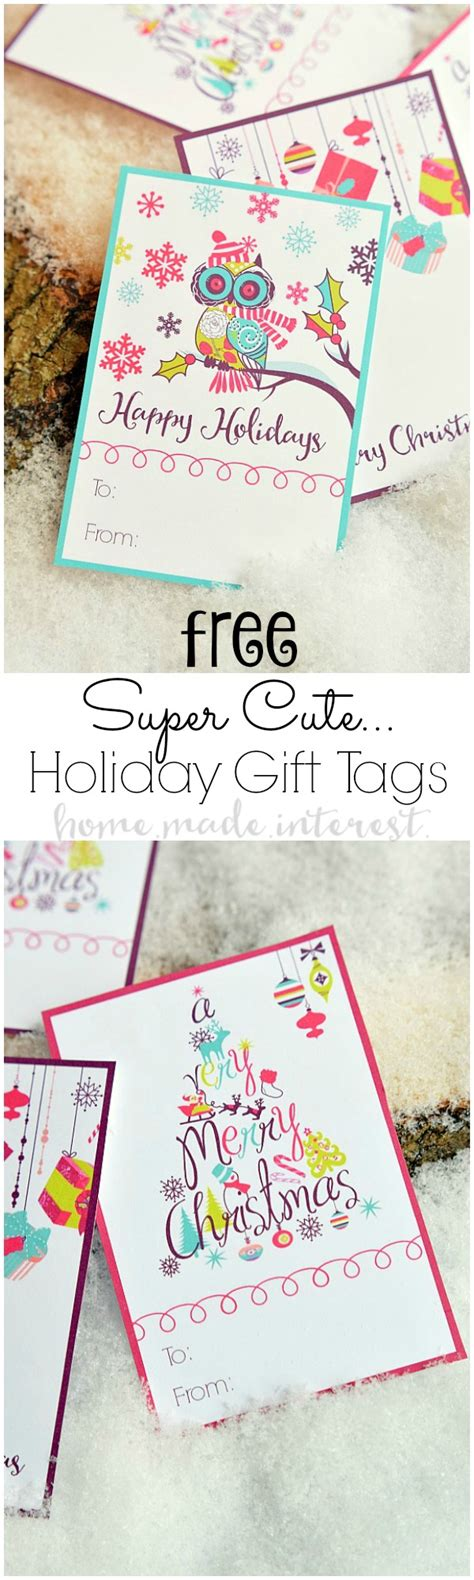 Super Cute Holiday Gift Tags  Free Printable! Home